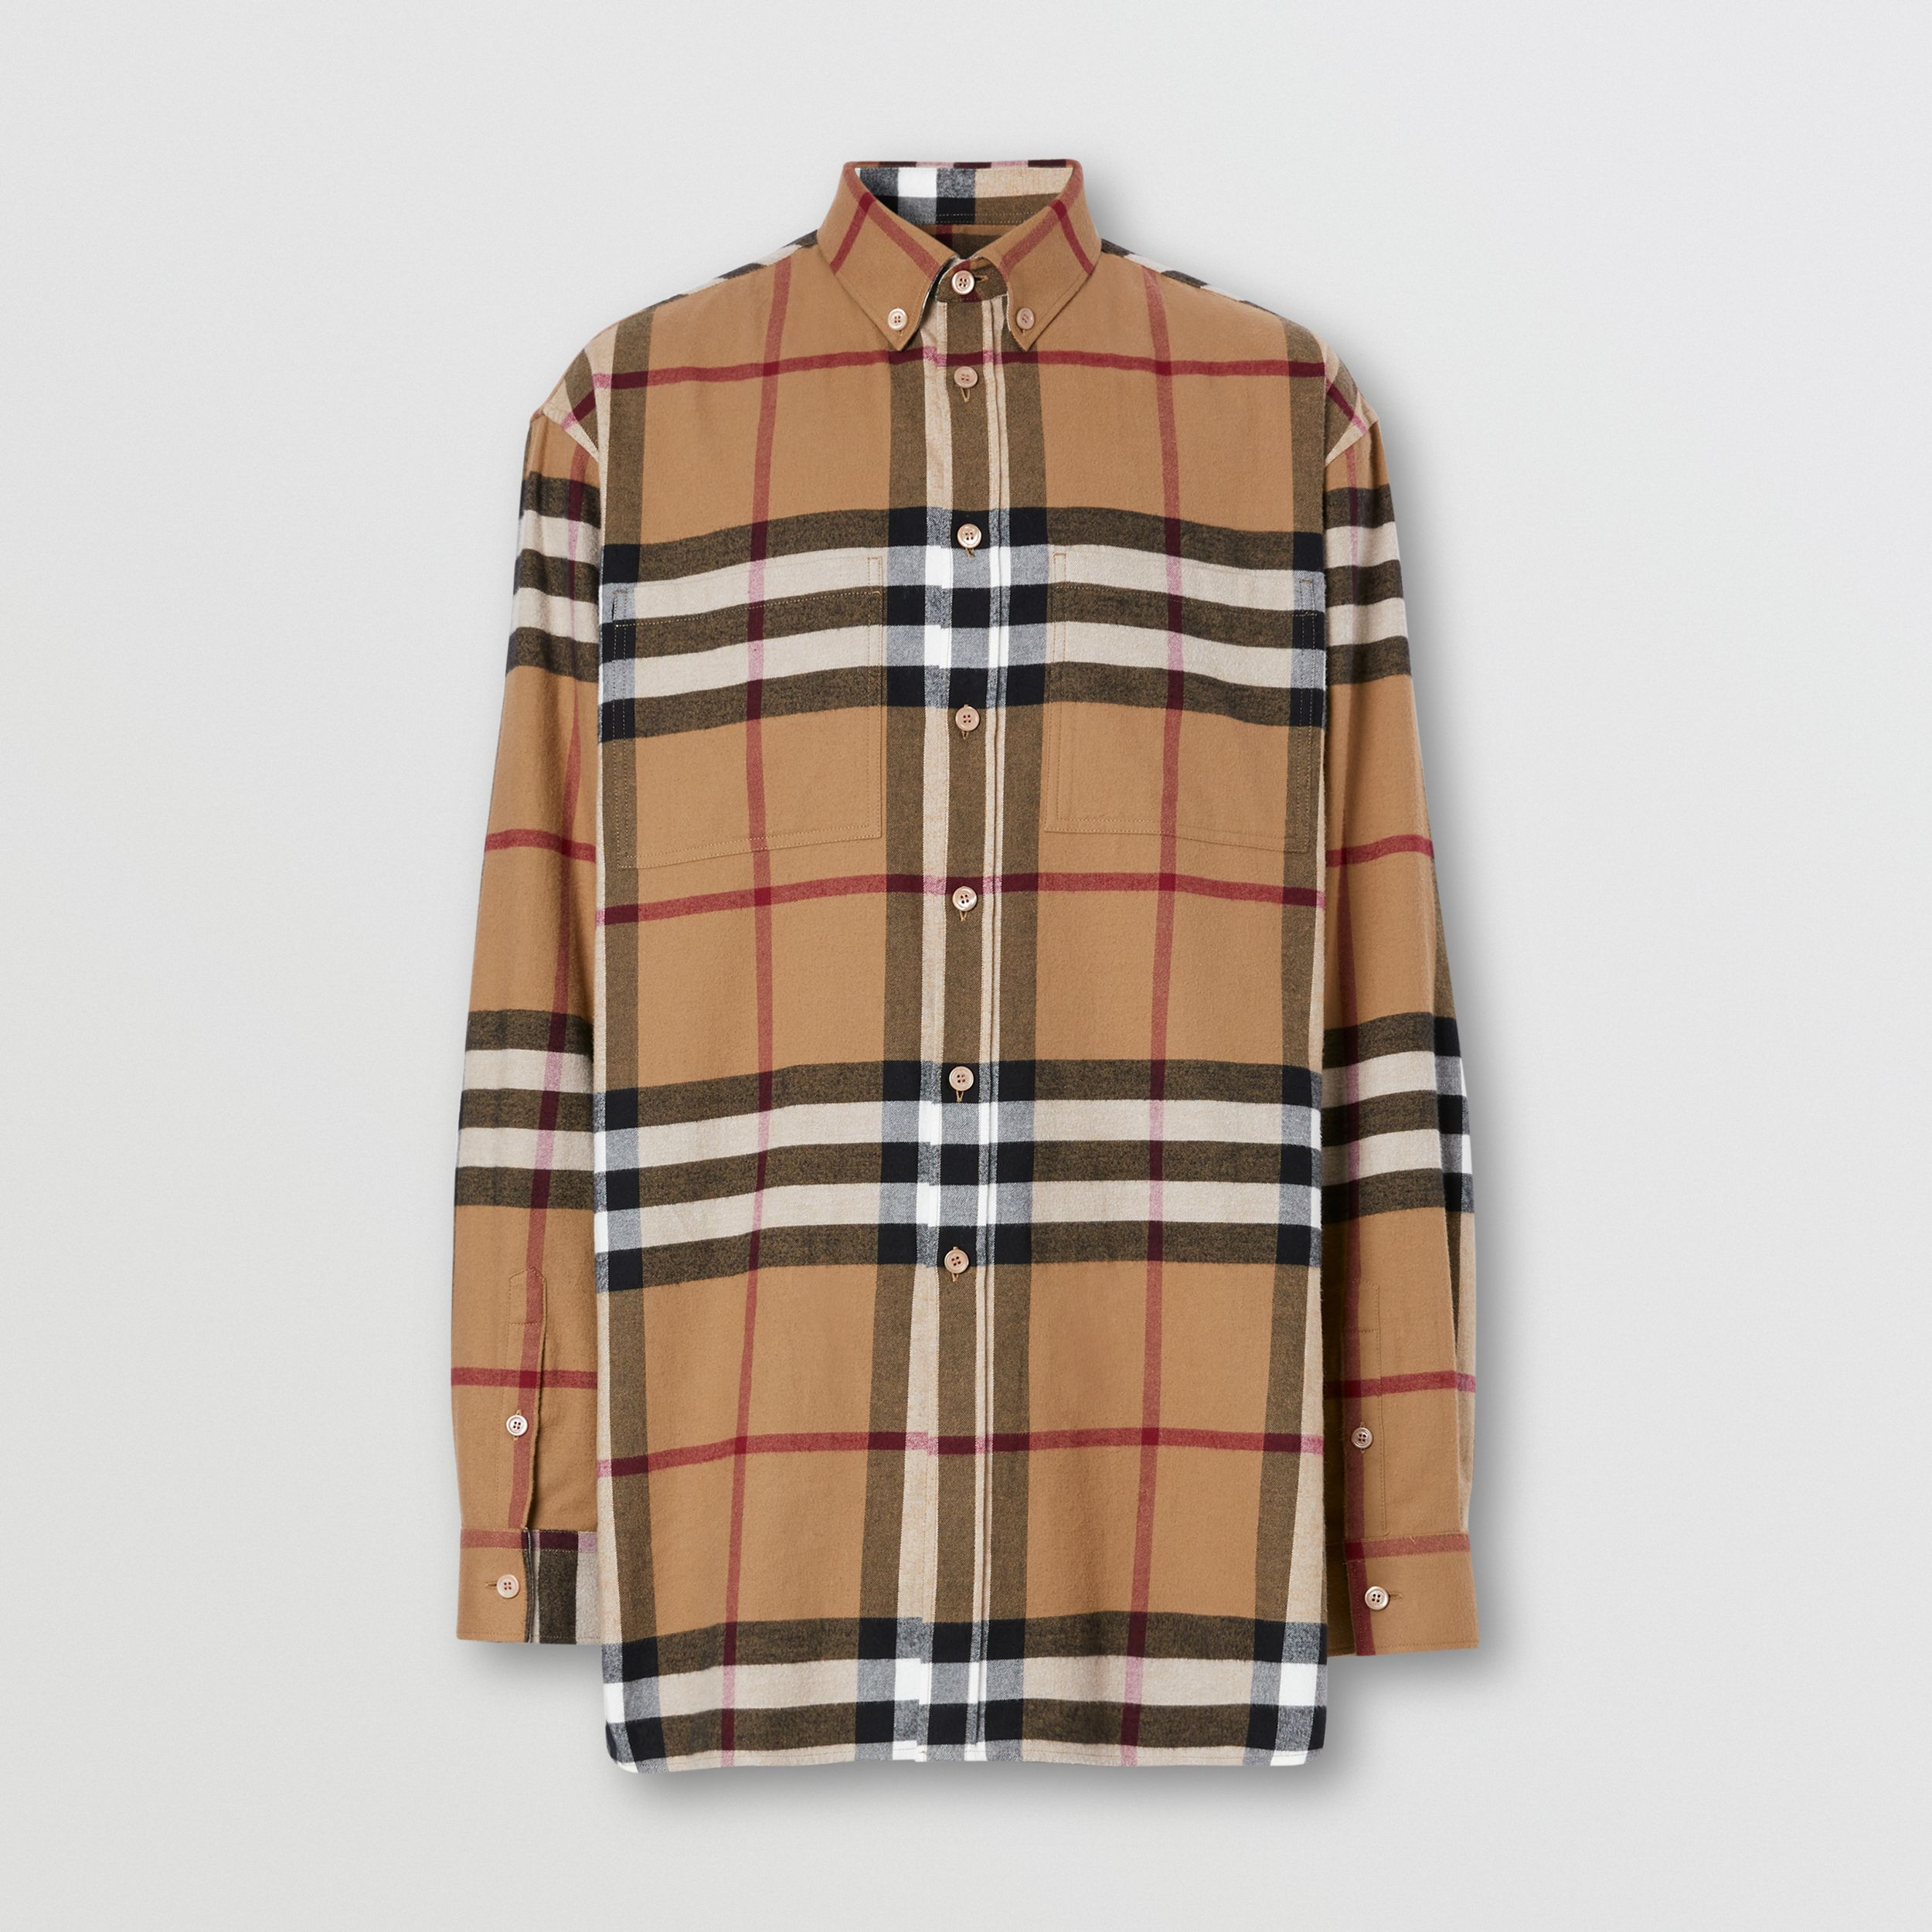 Relaxed Fit House Check Cotton Flannel Shirt in Birch Brown | Burberry - 4